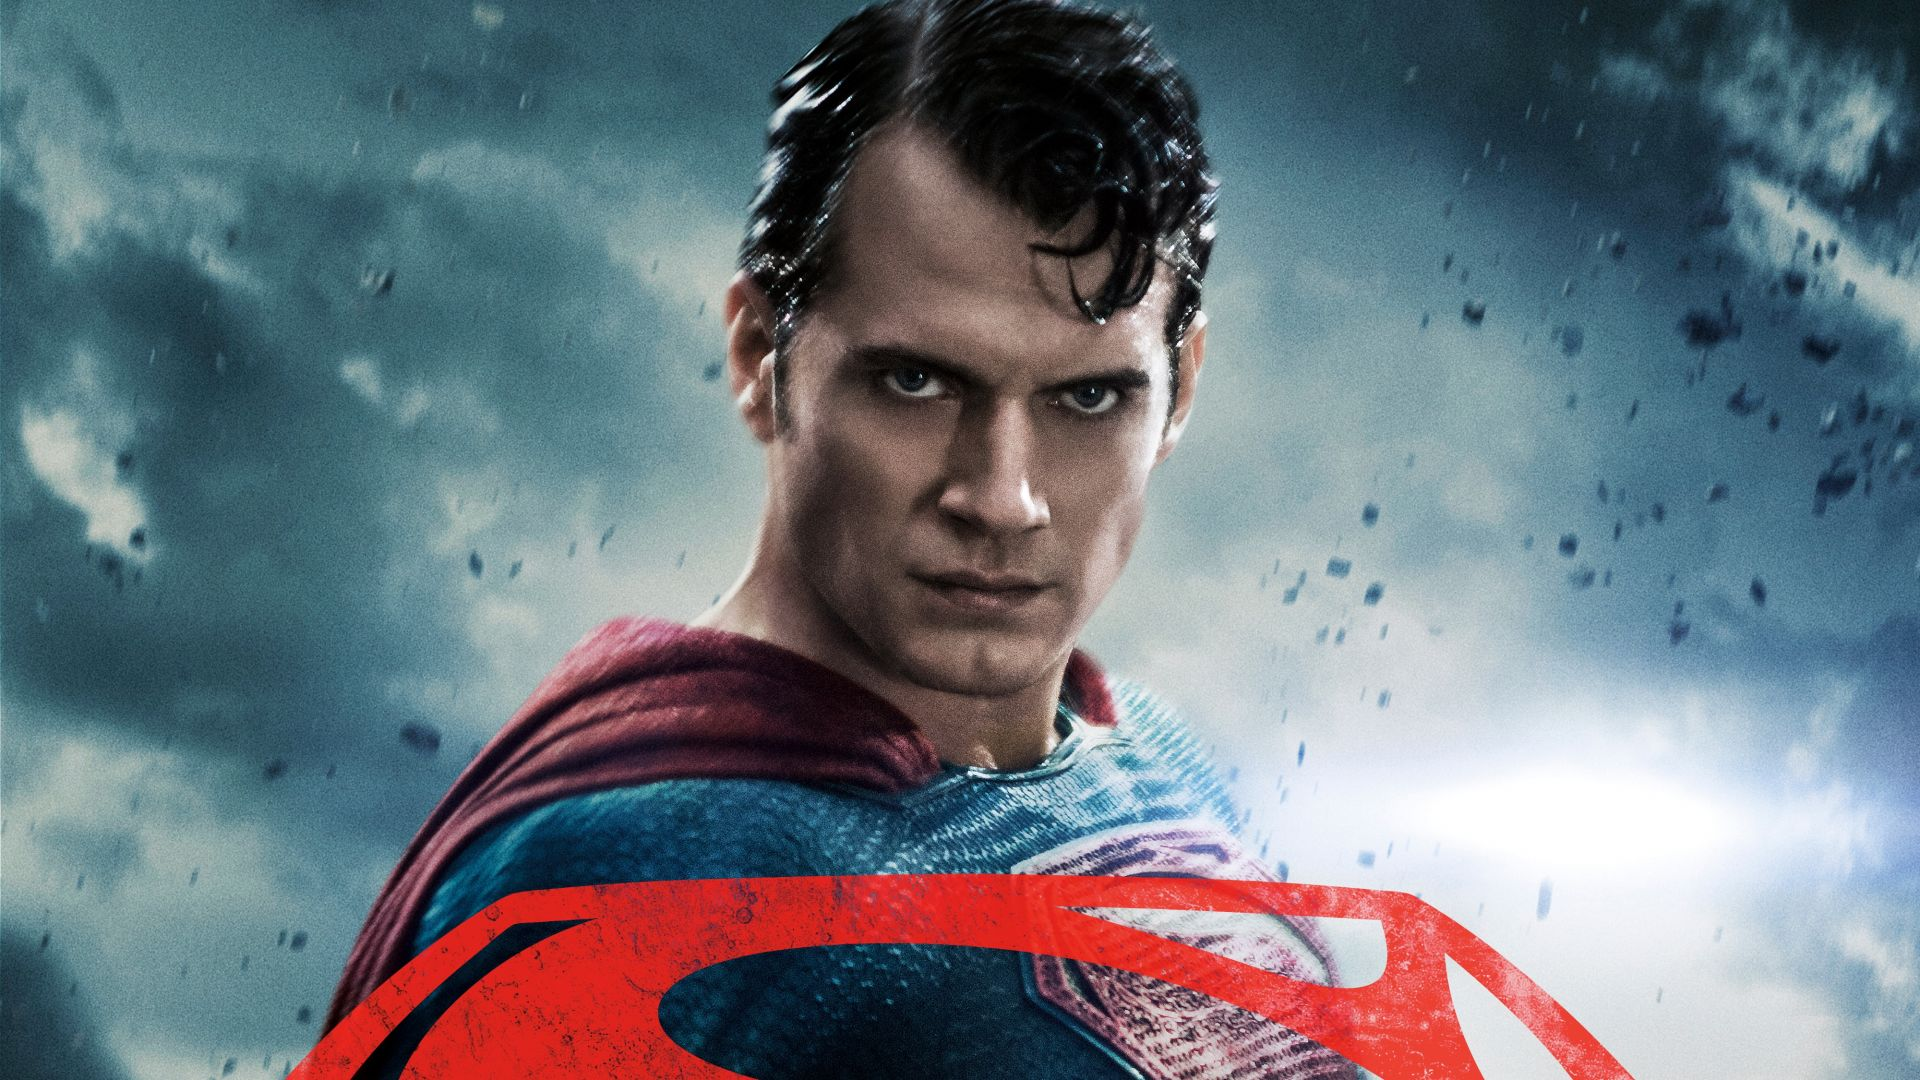 Batman v Superman: Dawn of Justice, Henry Cavill, Best Movies of 2016 (horizontal)